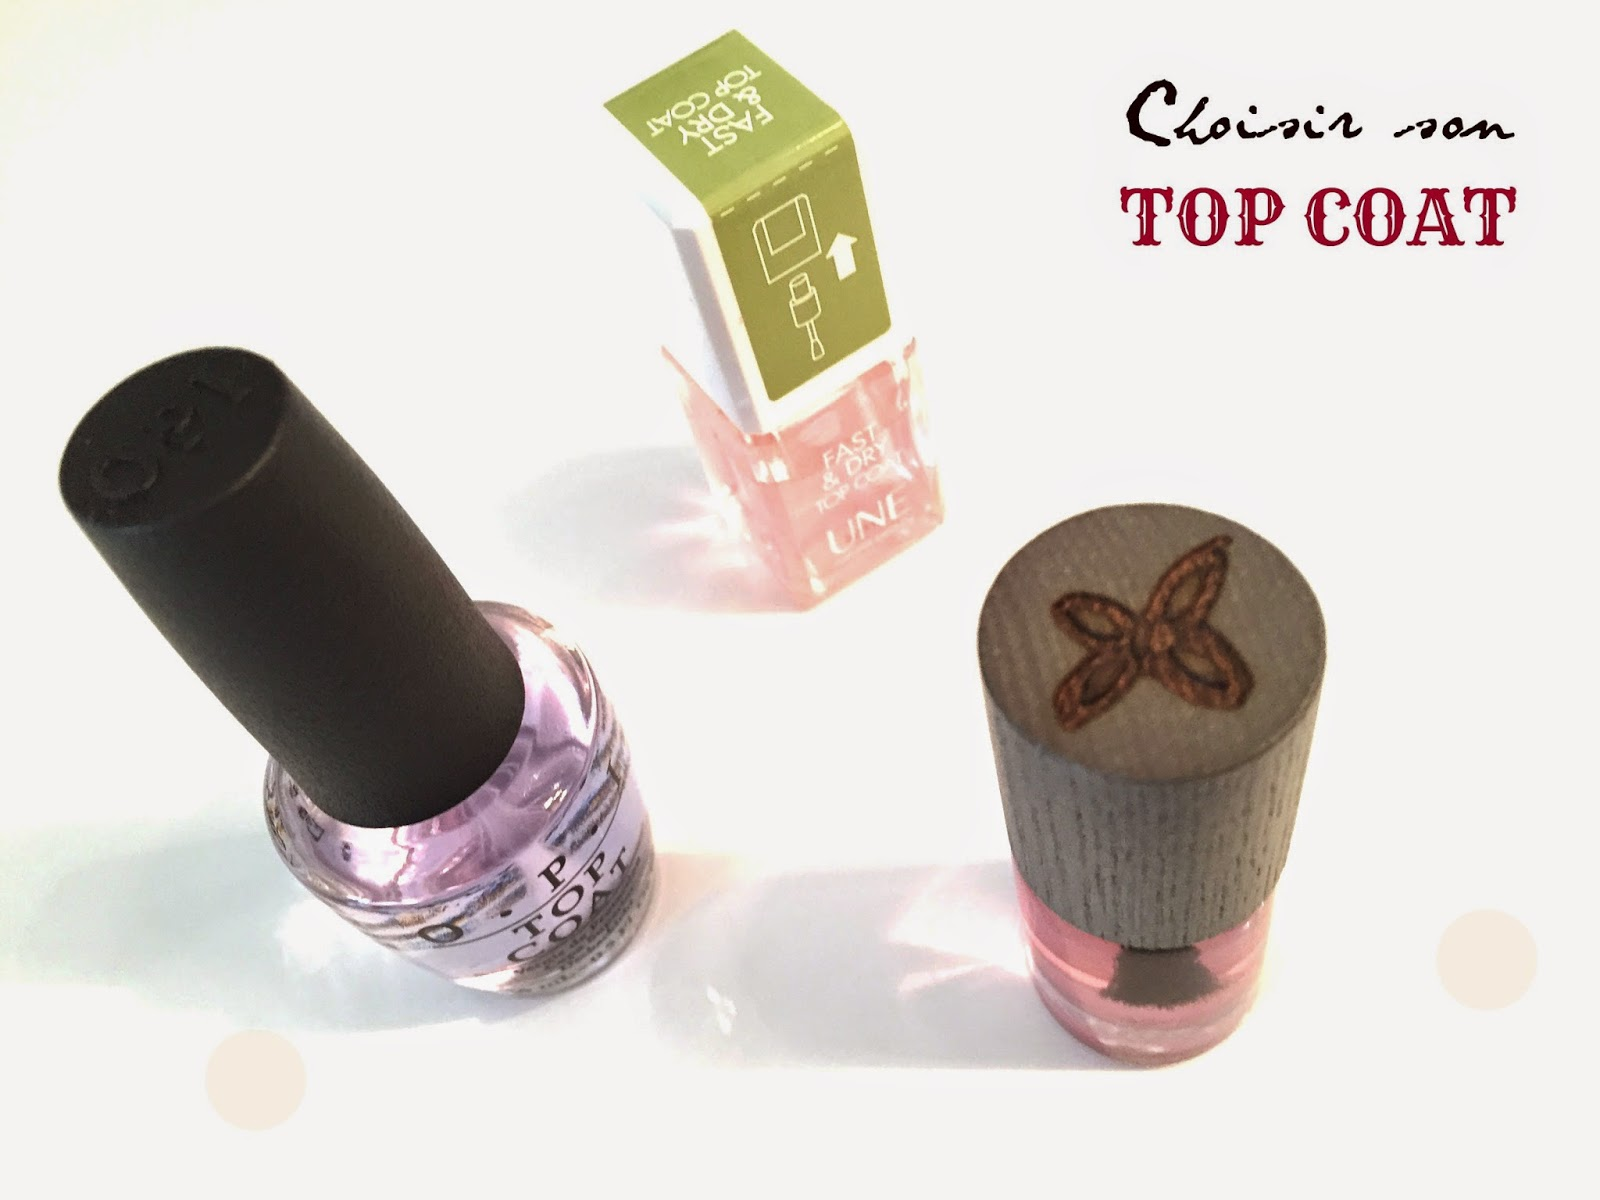 Choisir son top coat